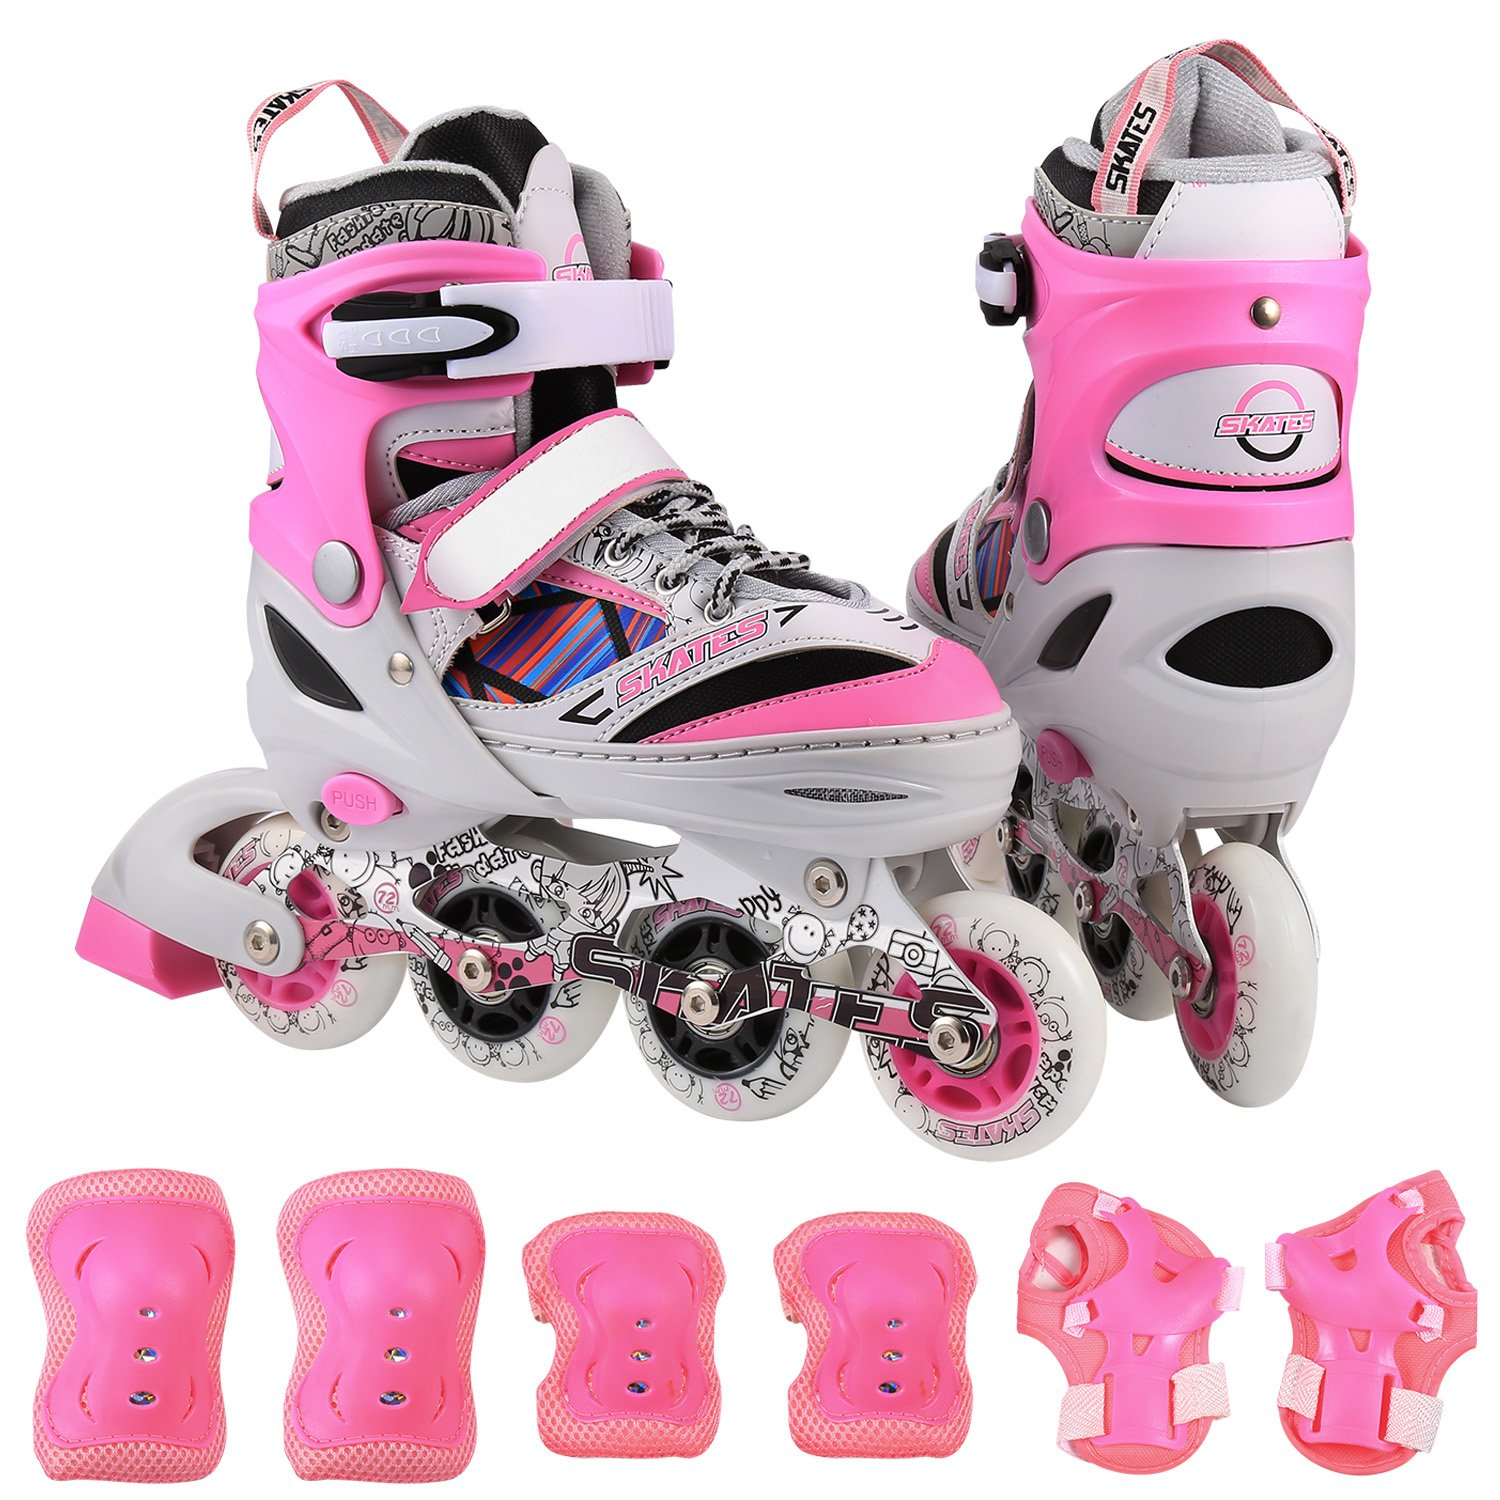 ANCHEER Kids Adjustable Inline Skate Set Rollerblades With Protective Pads Roller Skates For Boys/Girls/Adults Youth Outdoor Roller Skating Size 4 5 6 7